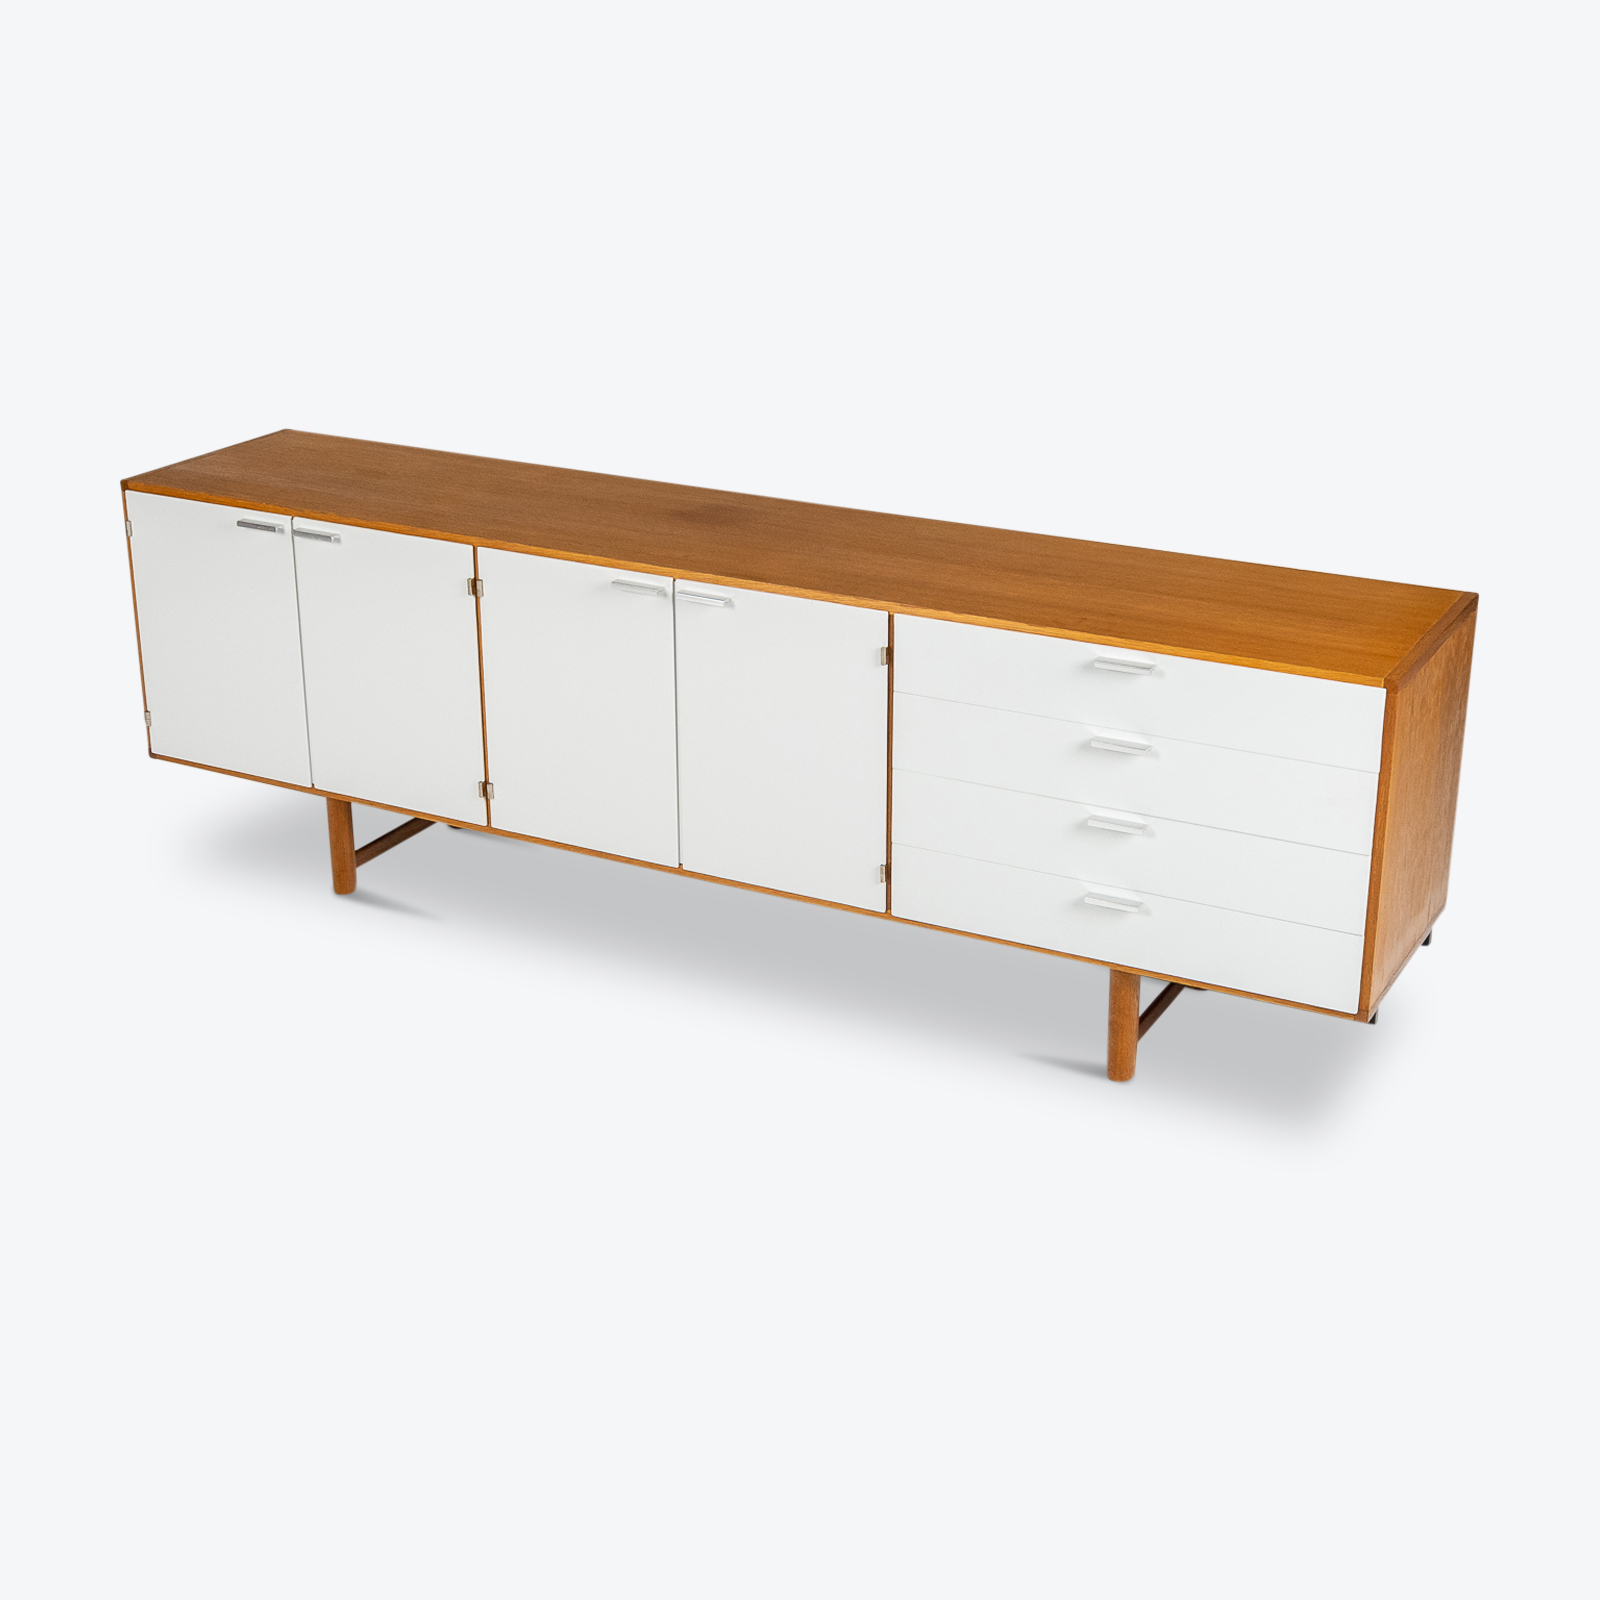 'made To Measure' Sideboard By By Cees Braakman For Pastoe, 1960s, The Netherlands Hero